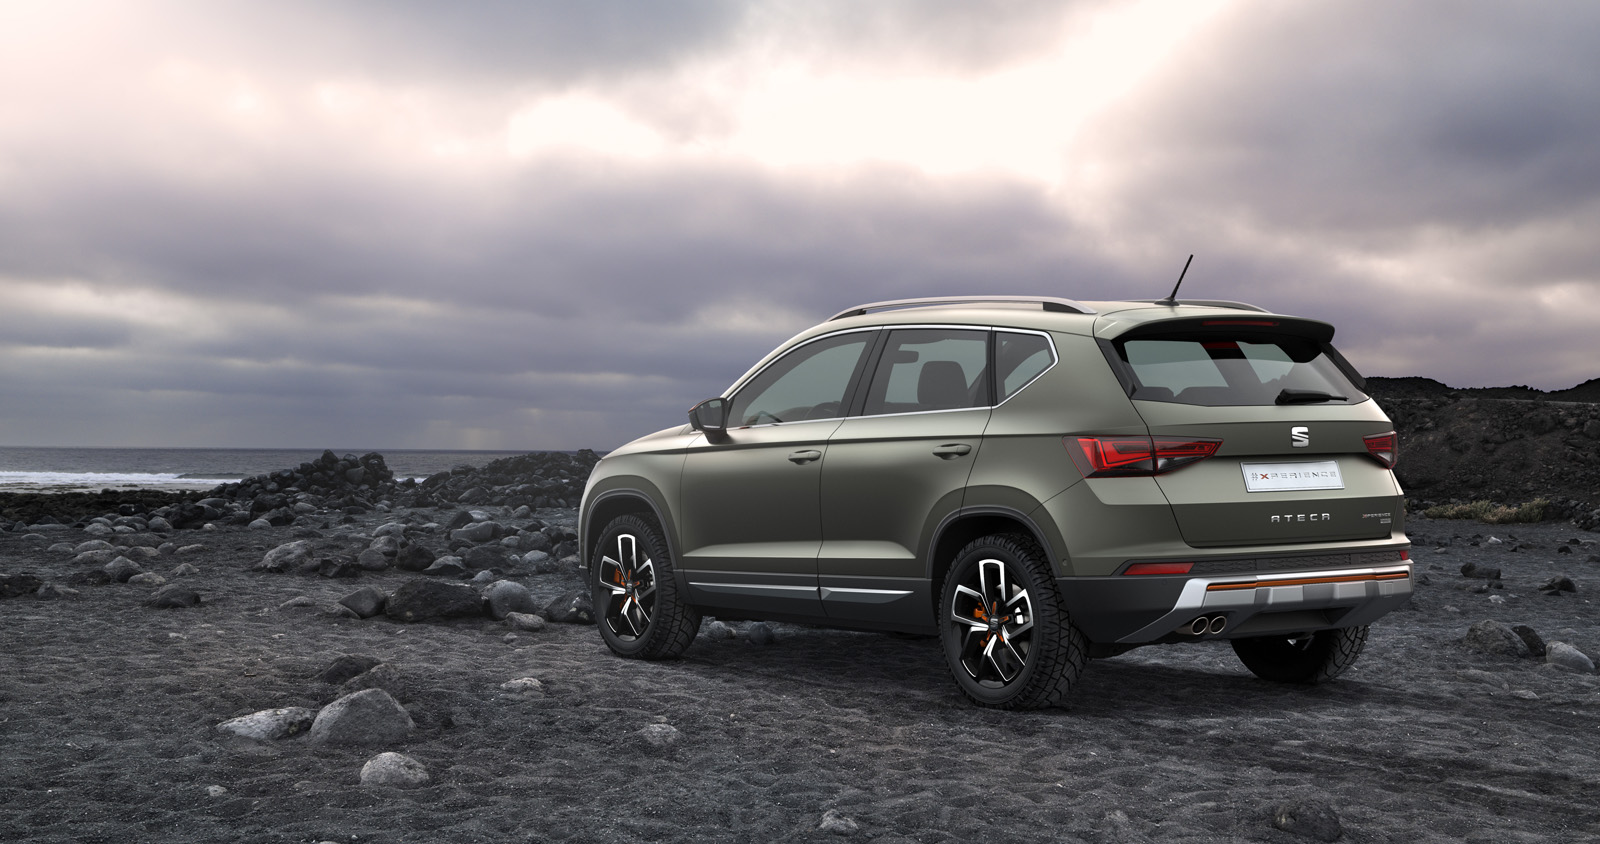 Seat's Upcoming Arona SUV To Get Rugged, Off-Road Version ...